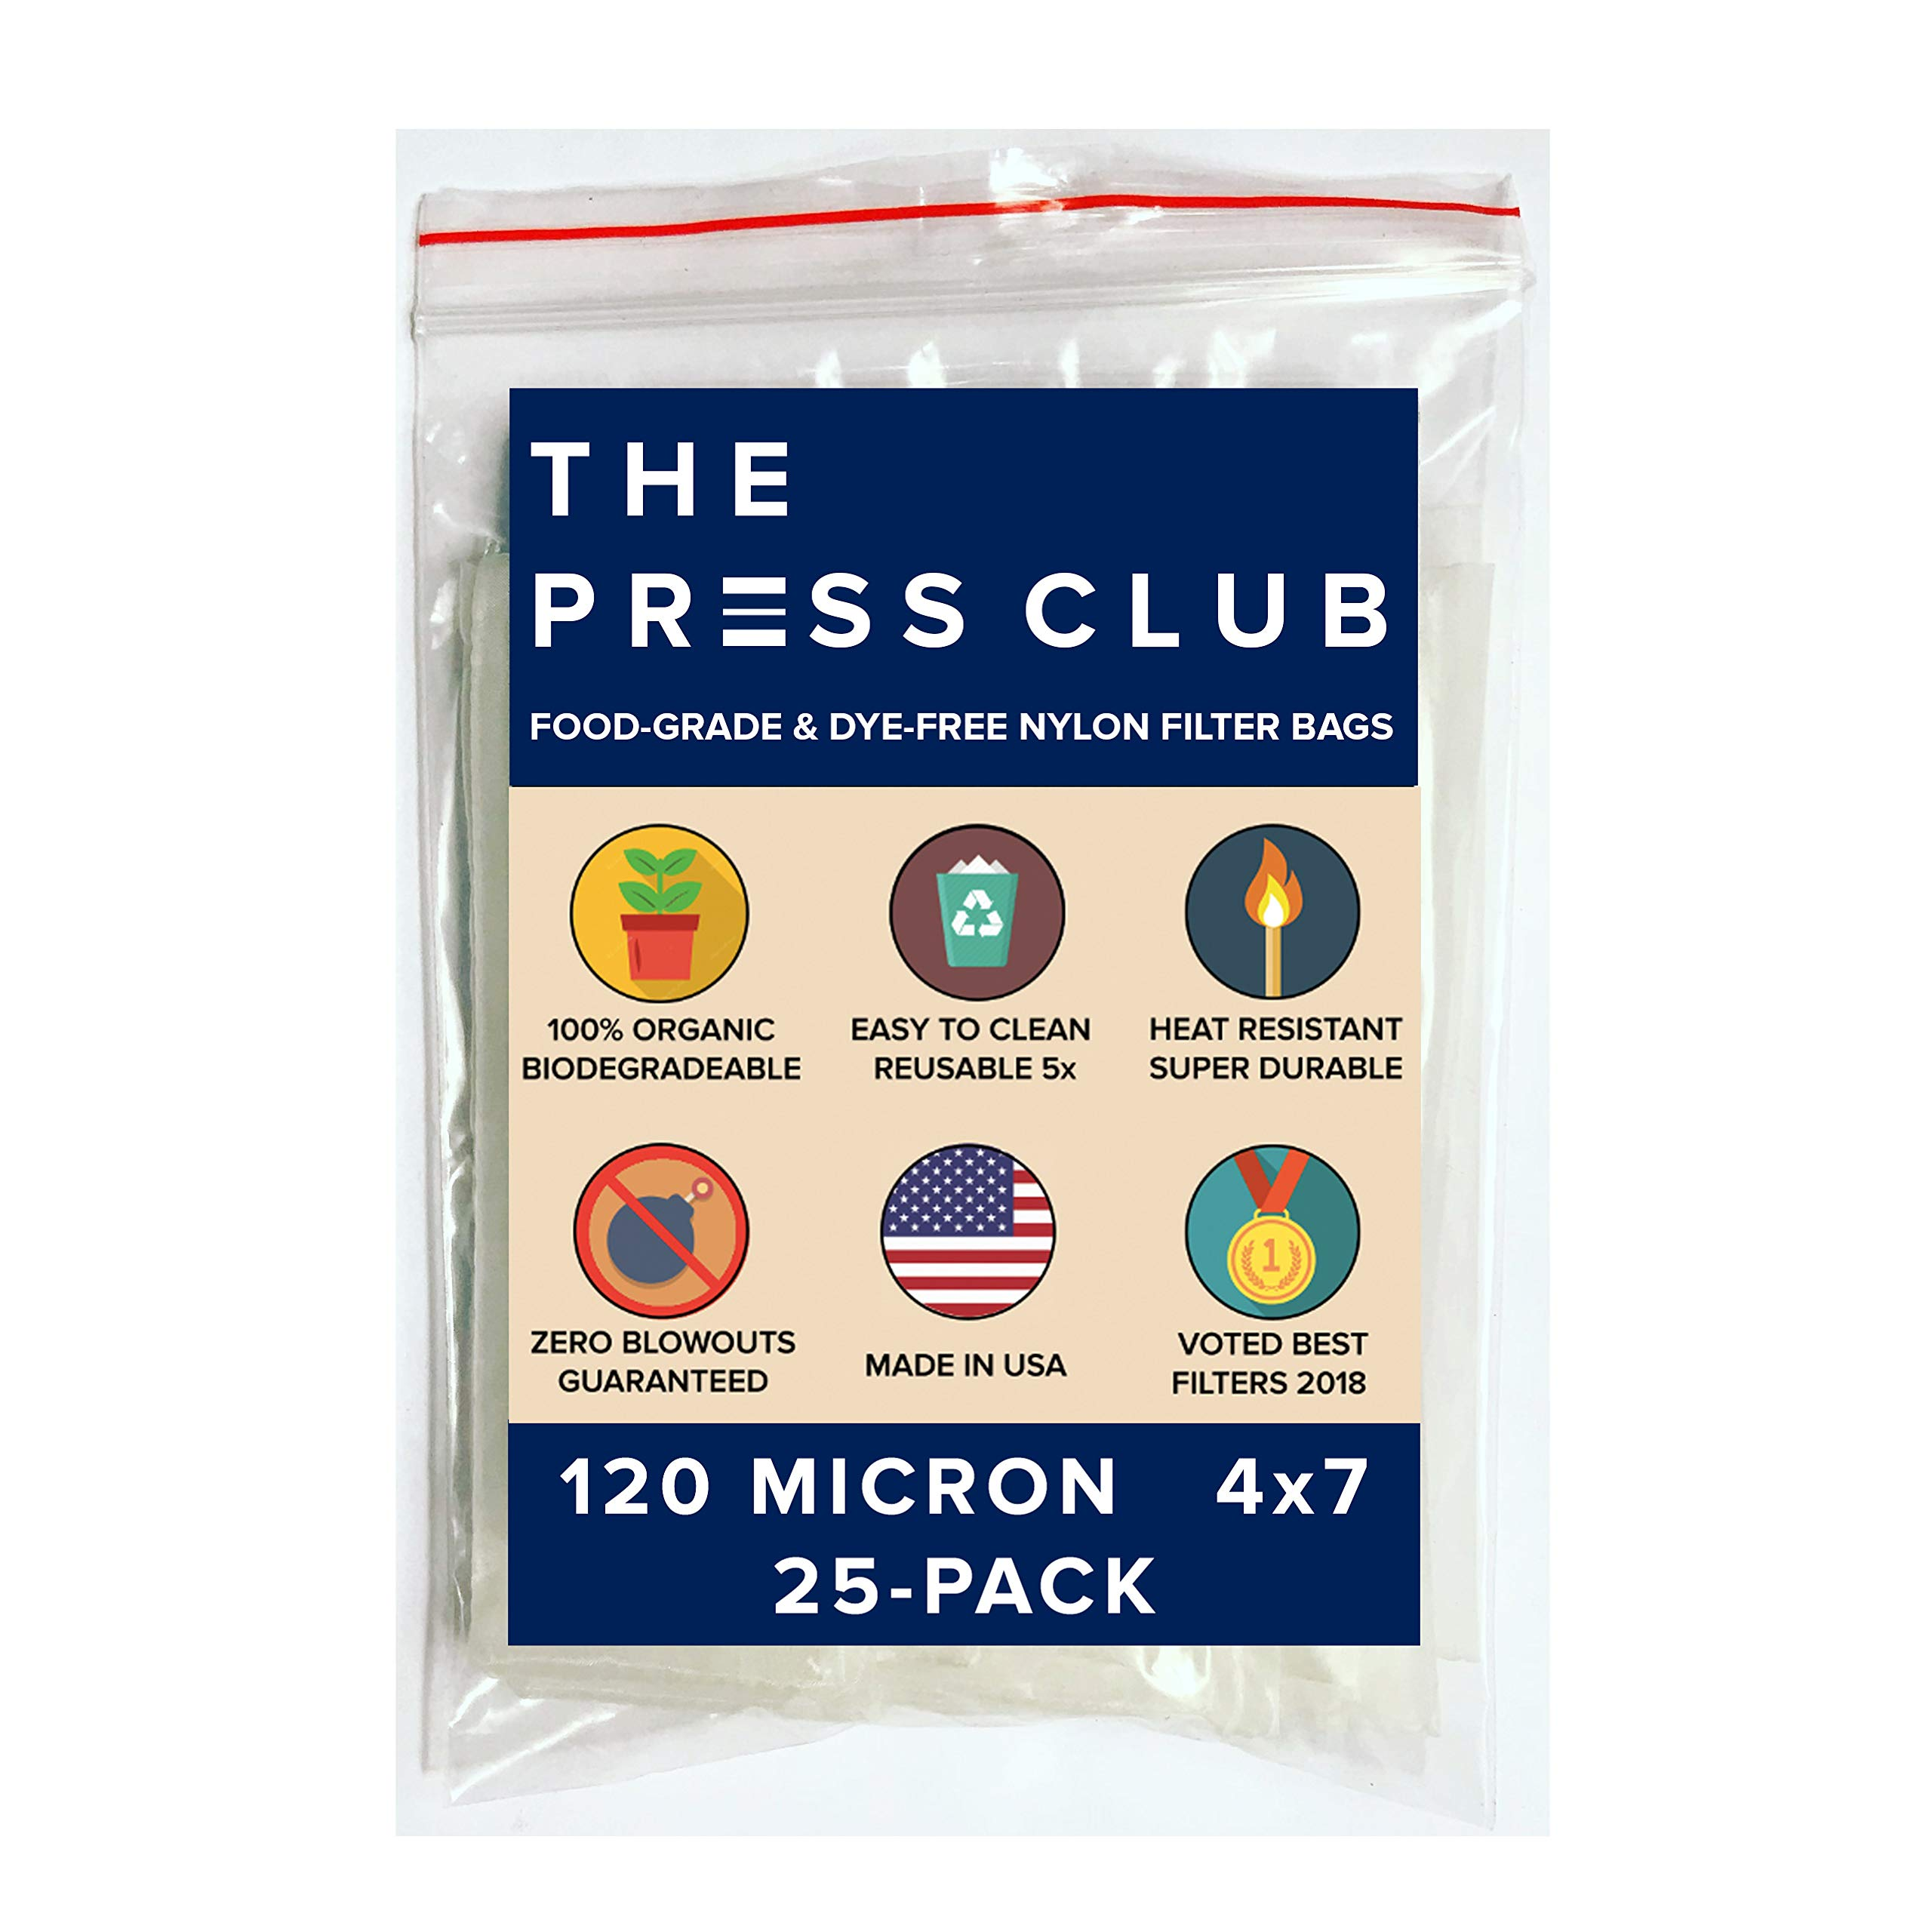 120 Micron | Premium Nylon Tea Filter Press Screen Bags | 4'' x 7'' | 25 Pack | Zero Blowout Guarantee | All Micron & Sizes Available by The Press Club